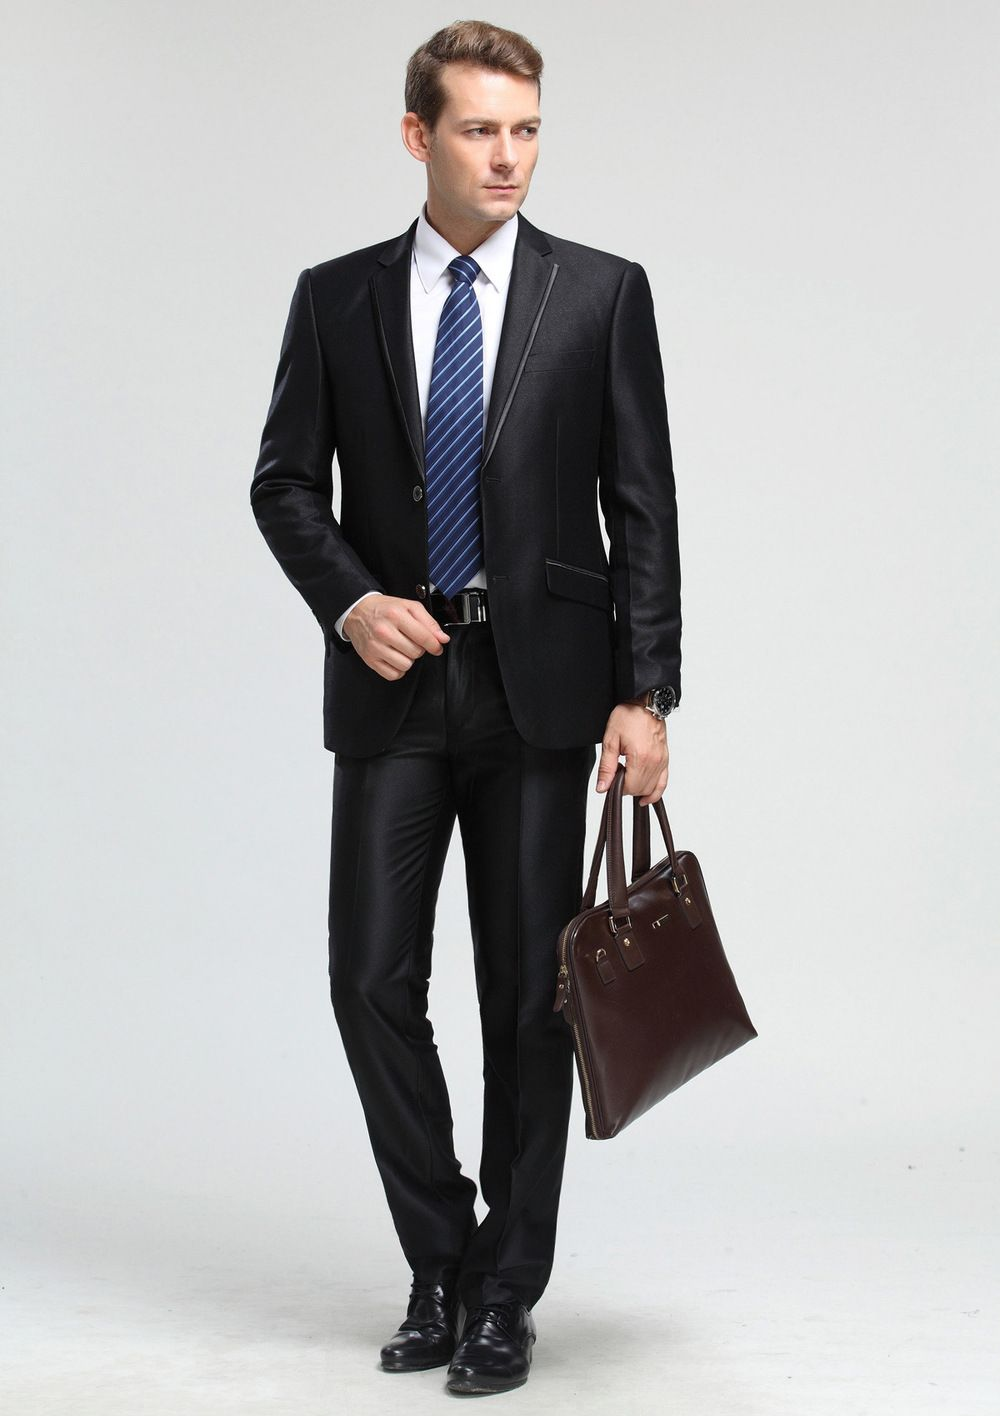 Suits For Office - Techieblogie.info